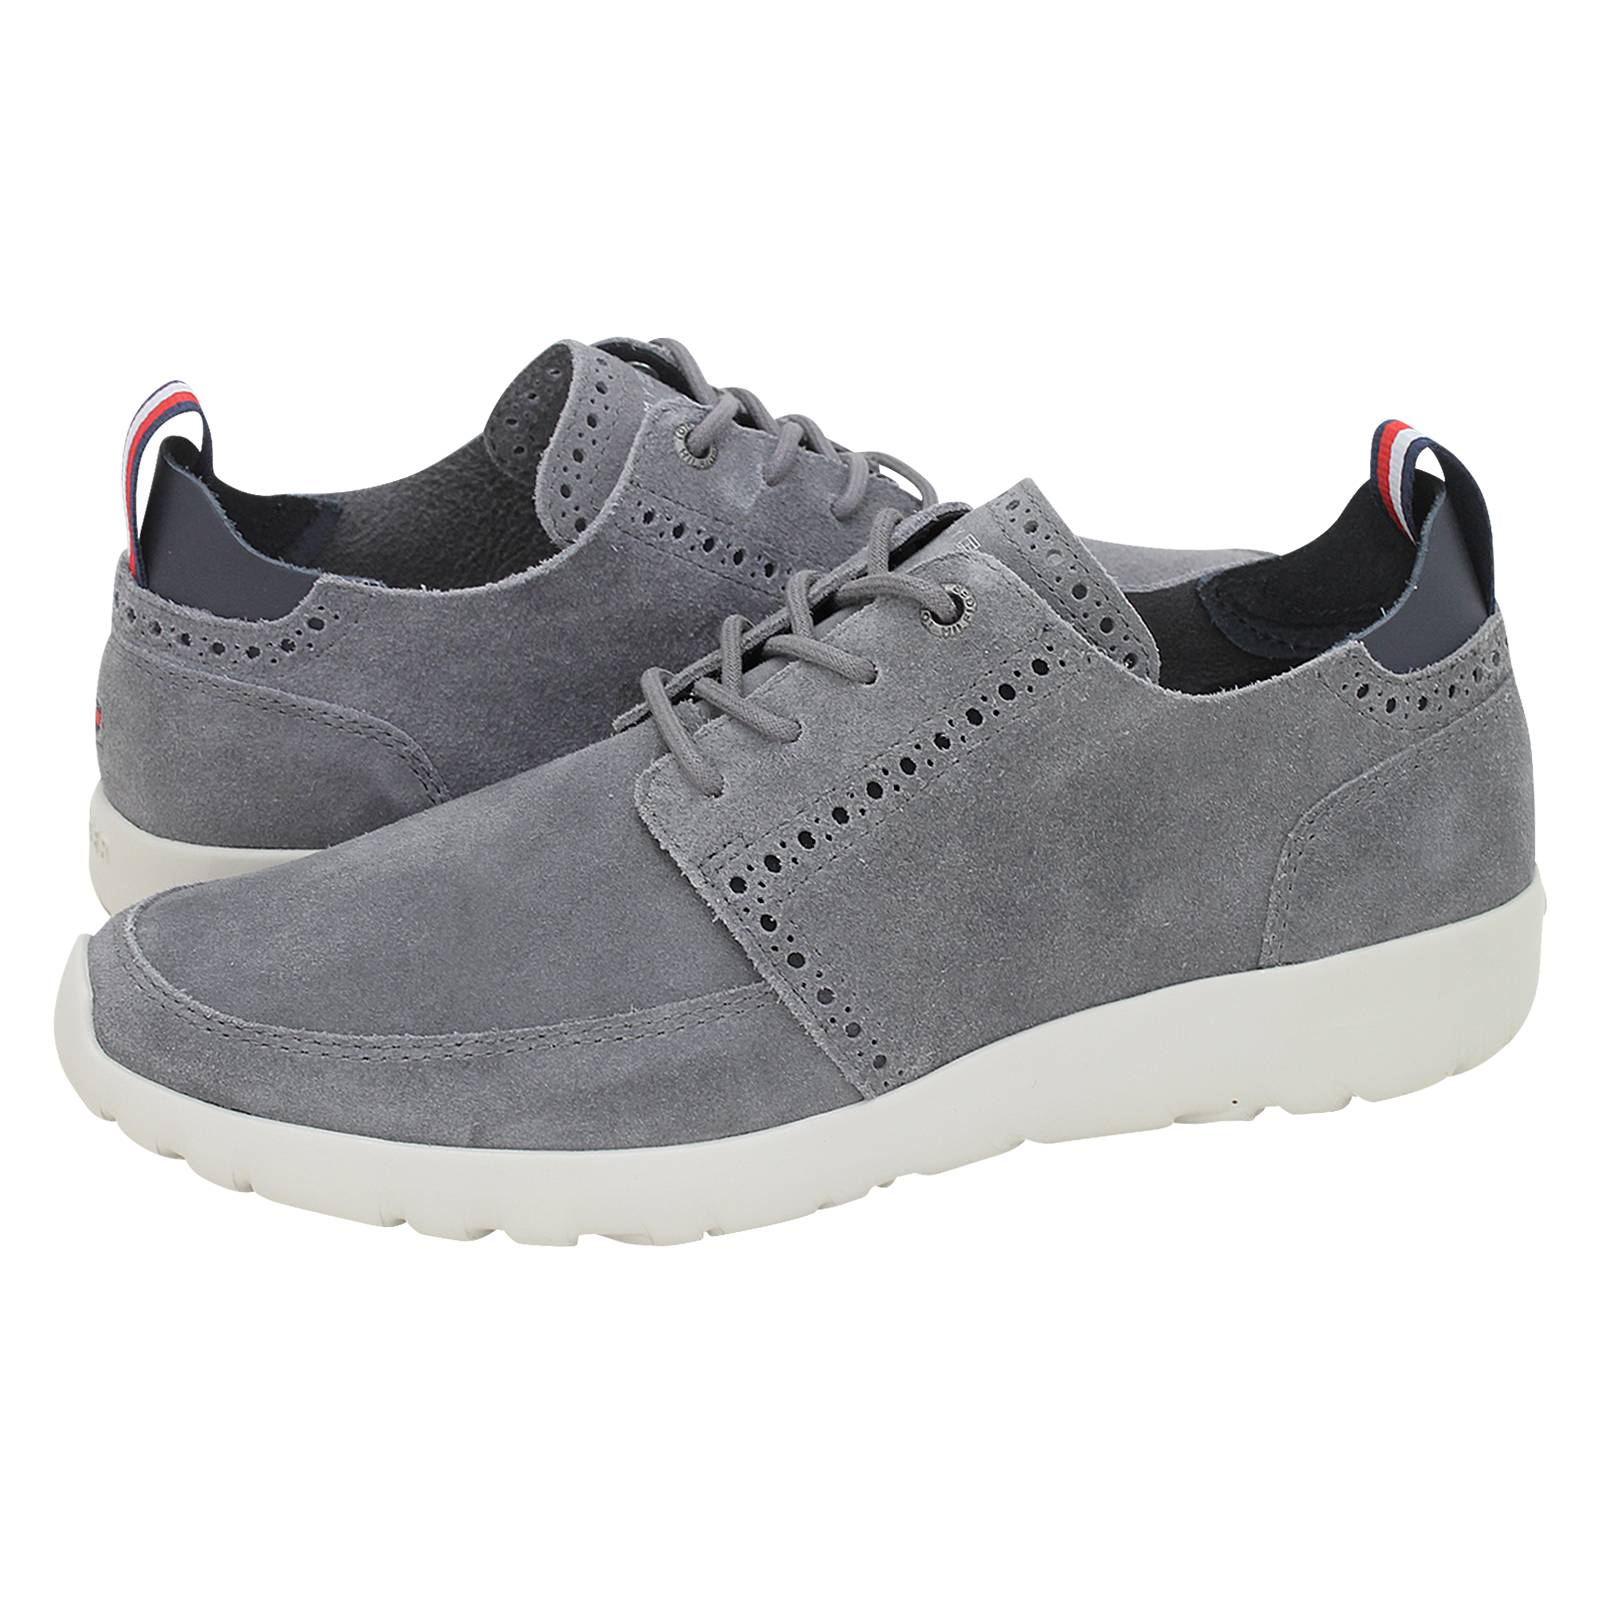 17668163f Tommy Hilfiger Extra Lightweight City Runner casual shoes. Extra  Lightweight City Runner